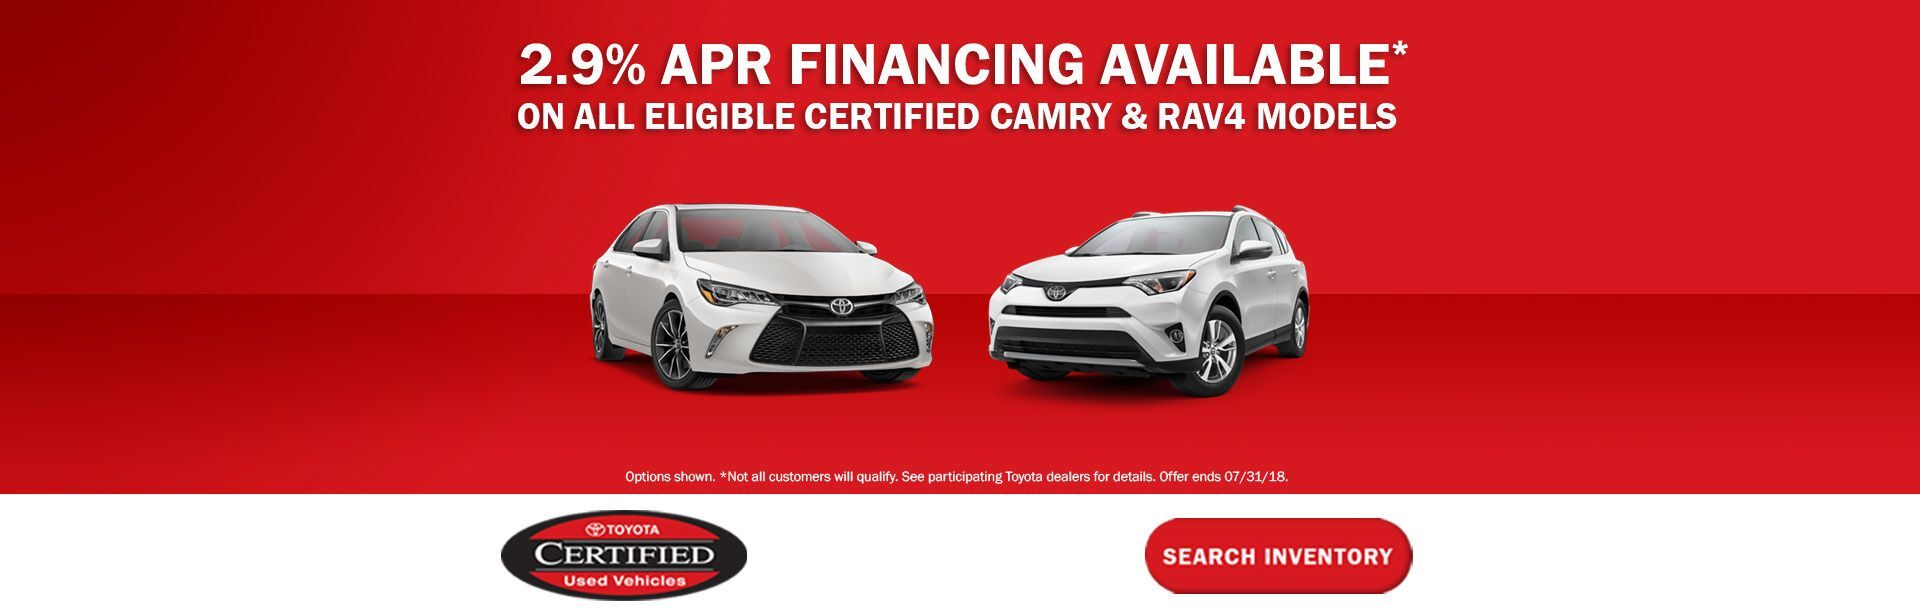 Dodge Dealership Nashville Tn >> Toyota Dealership Columbia and near Spring Hill TN Used Cars Roberts Toyota